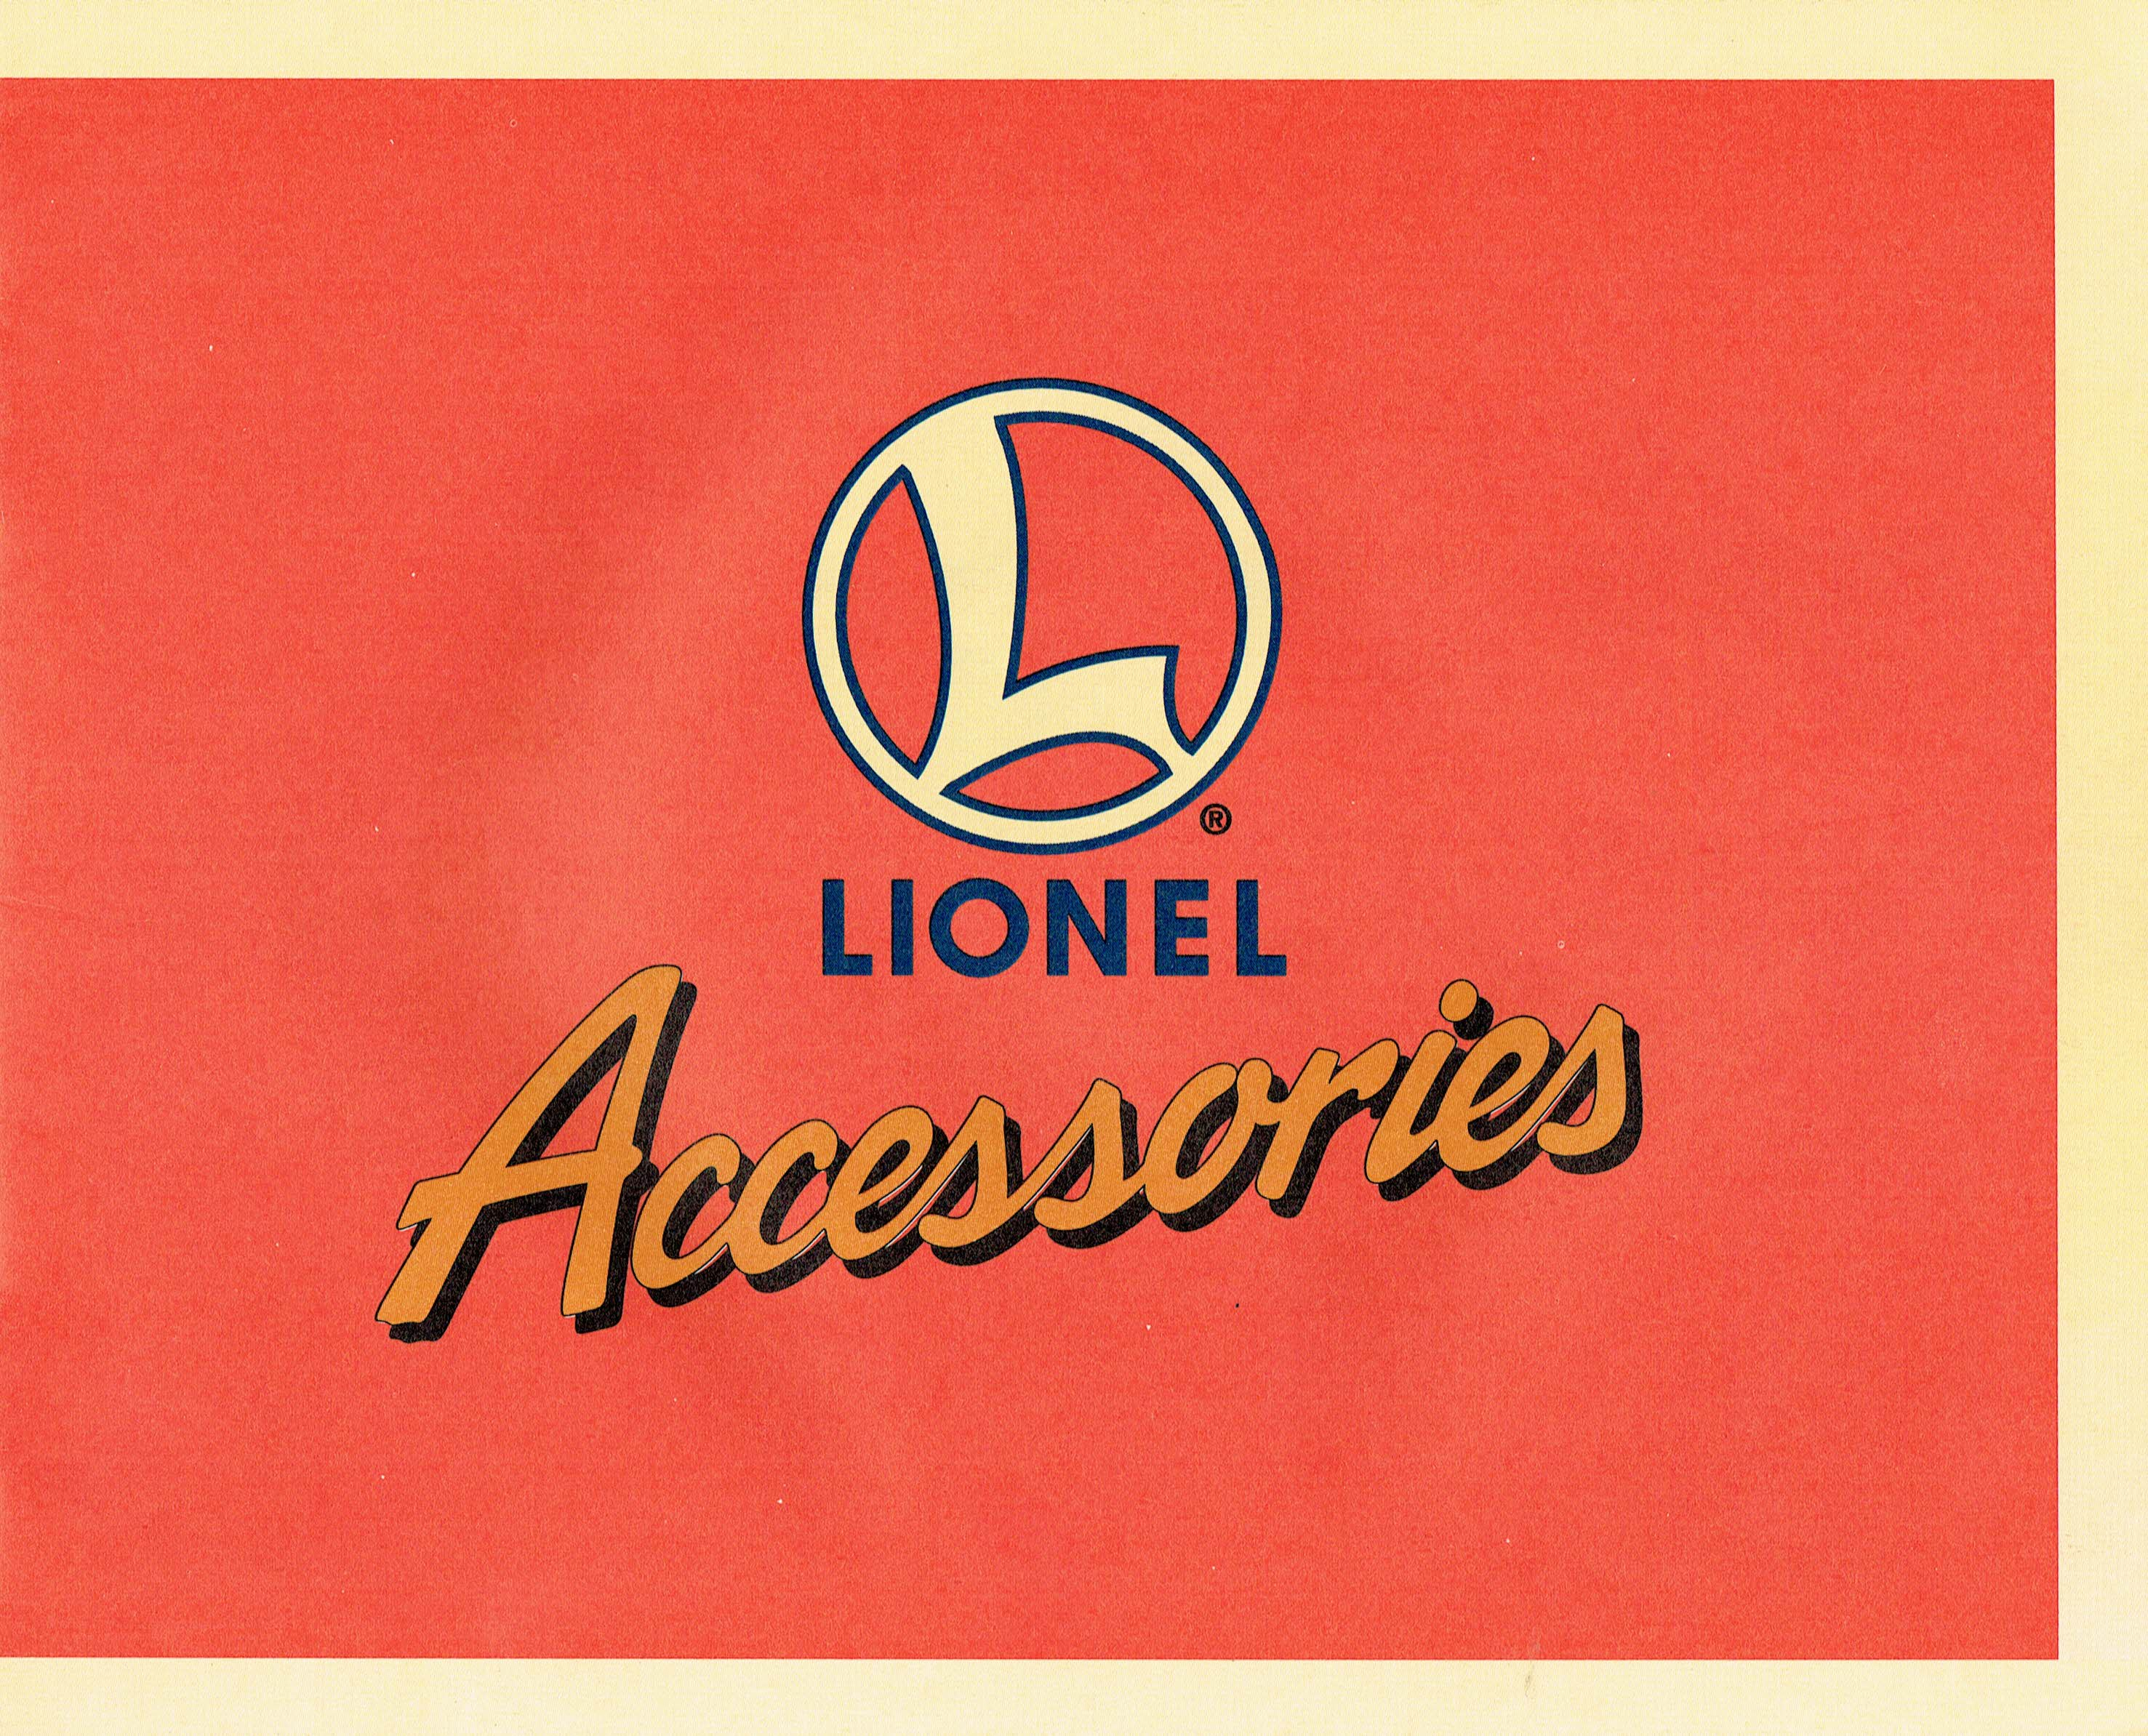 Lionel 1996 Accessories Catalog image